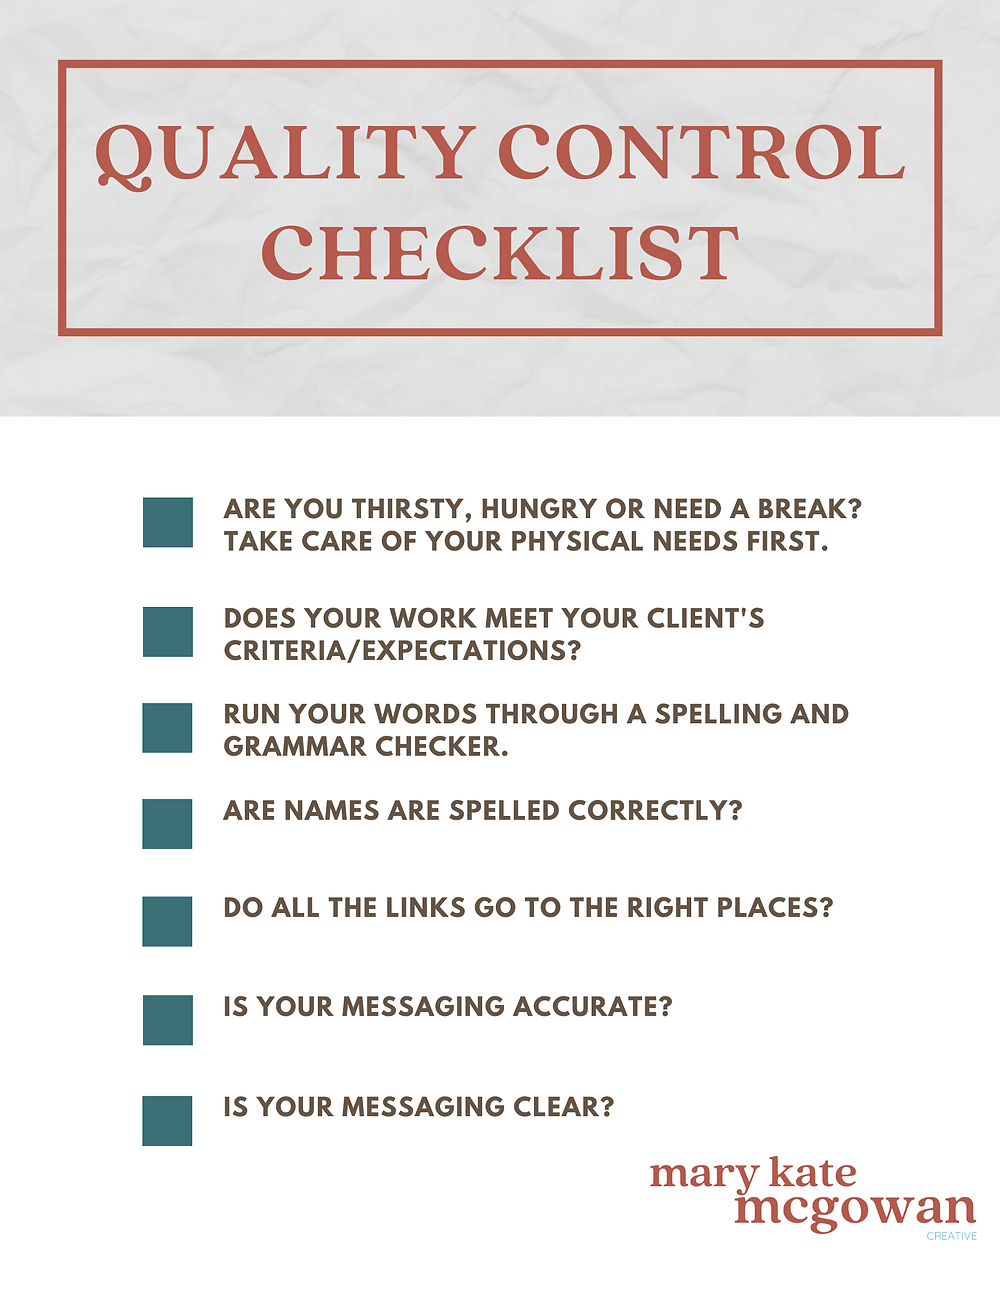 Quality Control Checklist 1.	Are you thirsty, hungry or need a break? Take care of your physical needs first. 2.	Does your work meet your client's criteria/expectations? 3.	Run your words through a spelling and grammar checker. 4.	Are names are spelled correctly? 5.	Do all the links work? 6.	is your messaging accurate? 7.	Is your messaging clear?